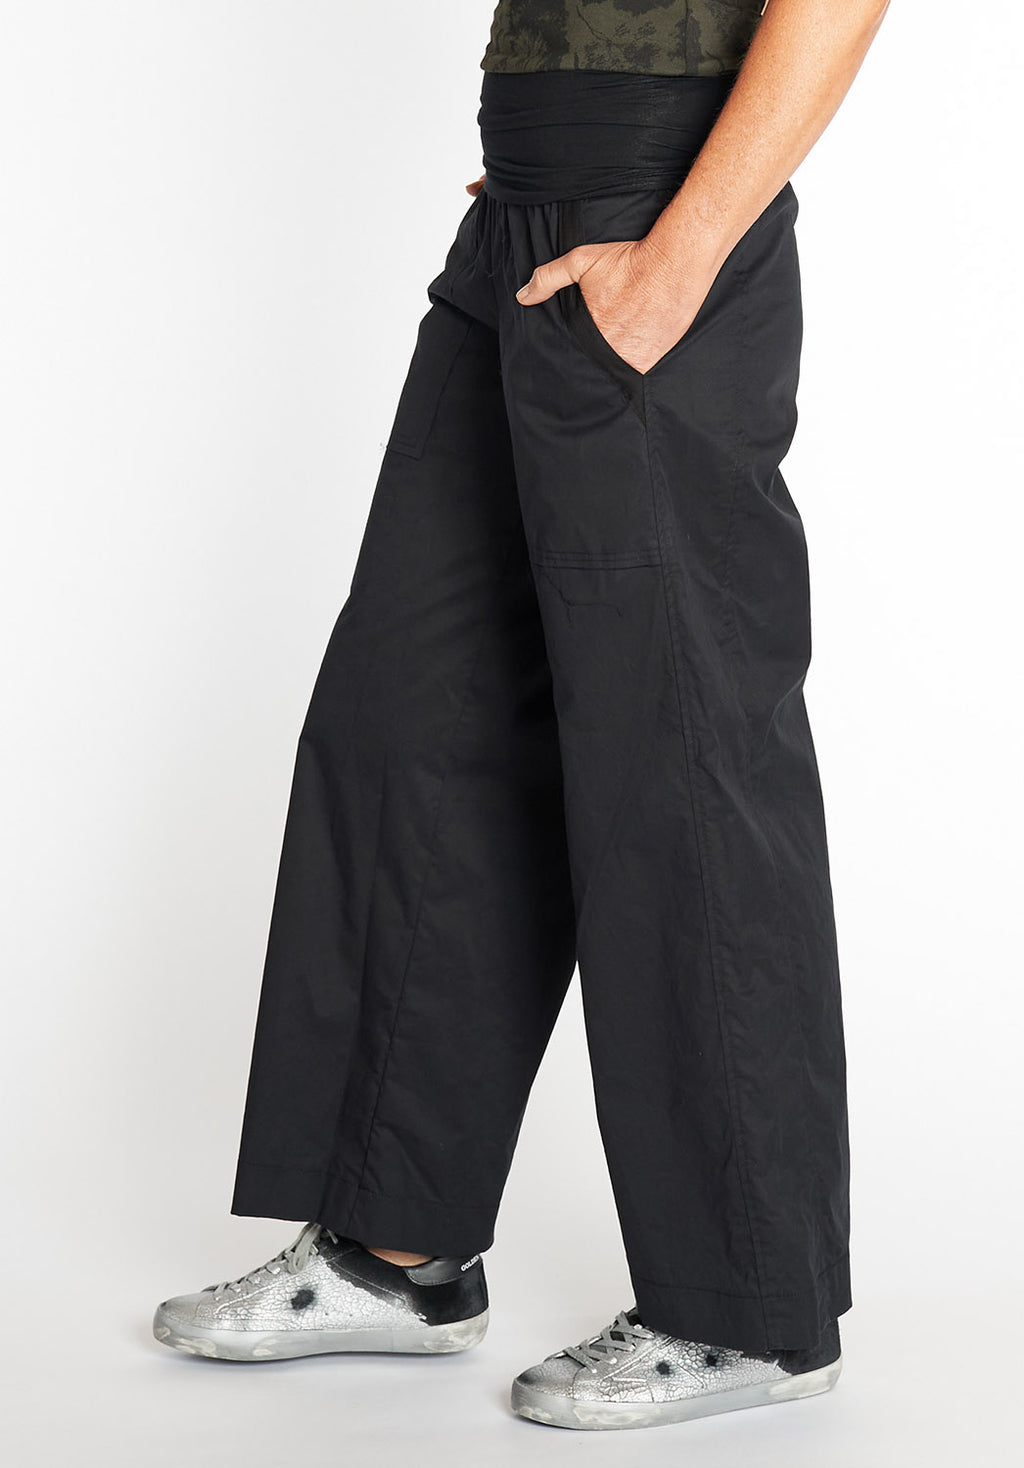 sustainable fashion online, ethical fashion, australian made fashion online, australian fashion designer, cotton pants australia, womens cotton pants online, designer cotton pants, designer pants australia